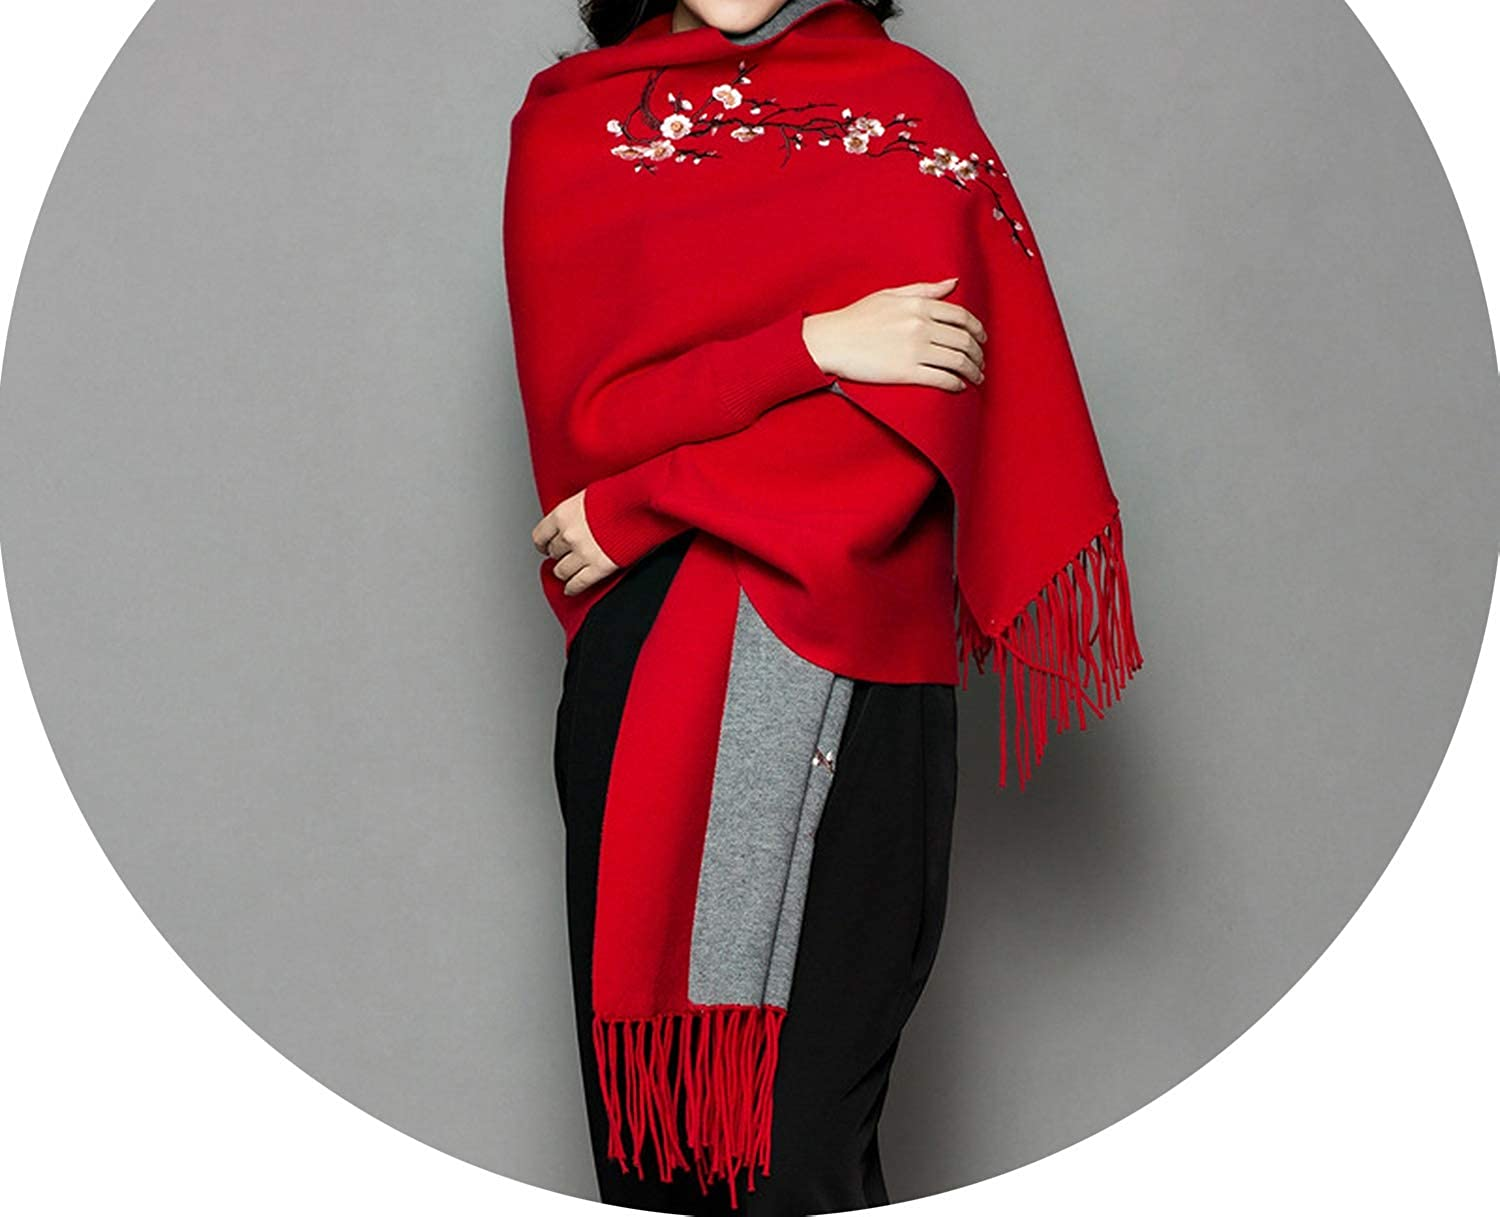 New scarves and stoles Autumn winter Plum embroidery white pink scarf Doubleduty cape cashmere long sleeves,Bright red and grey